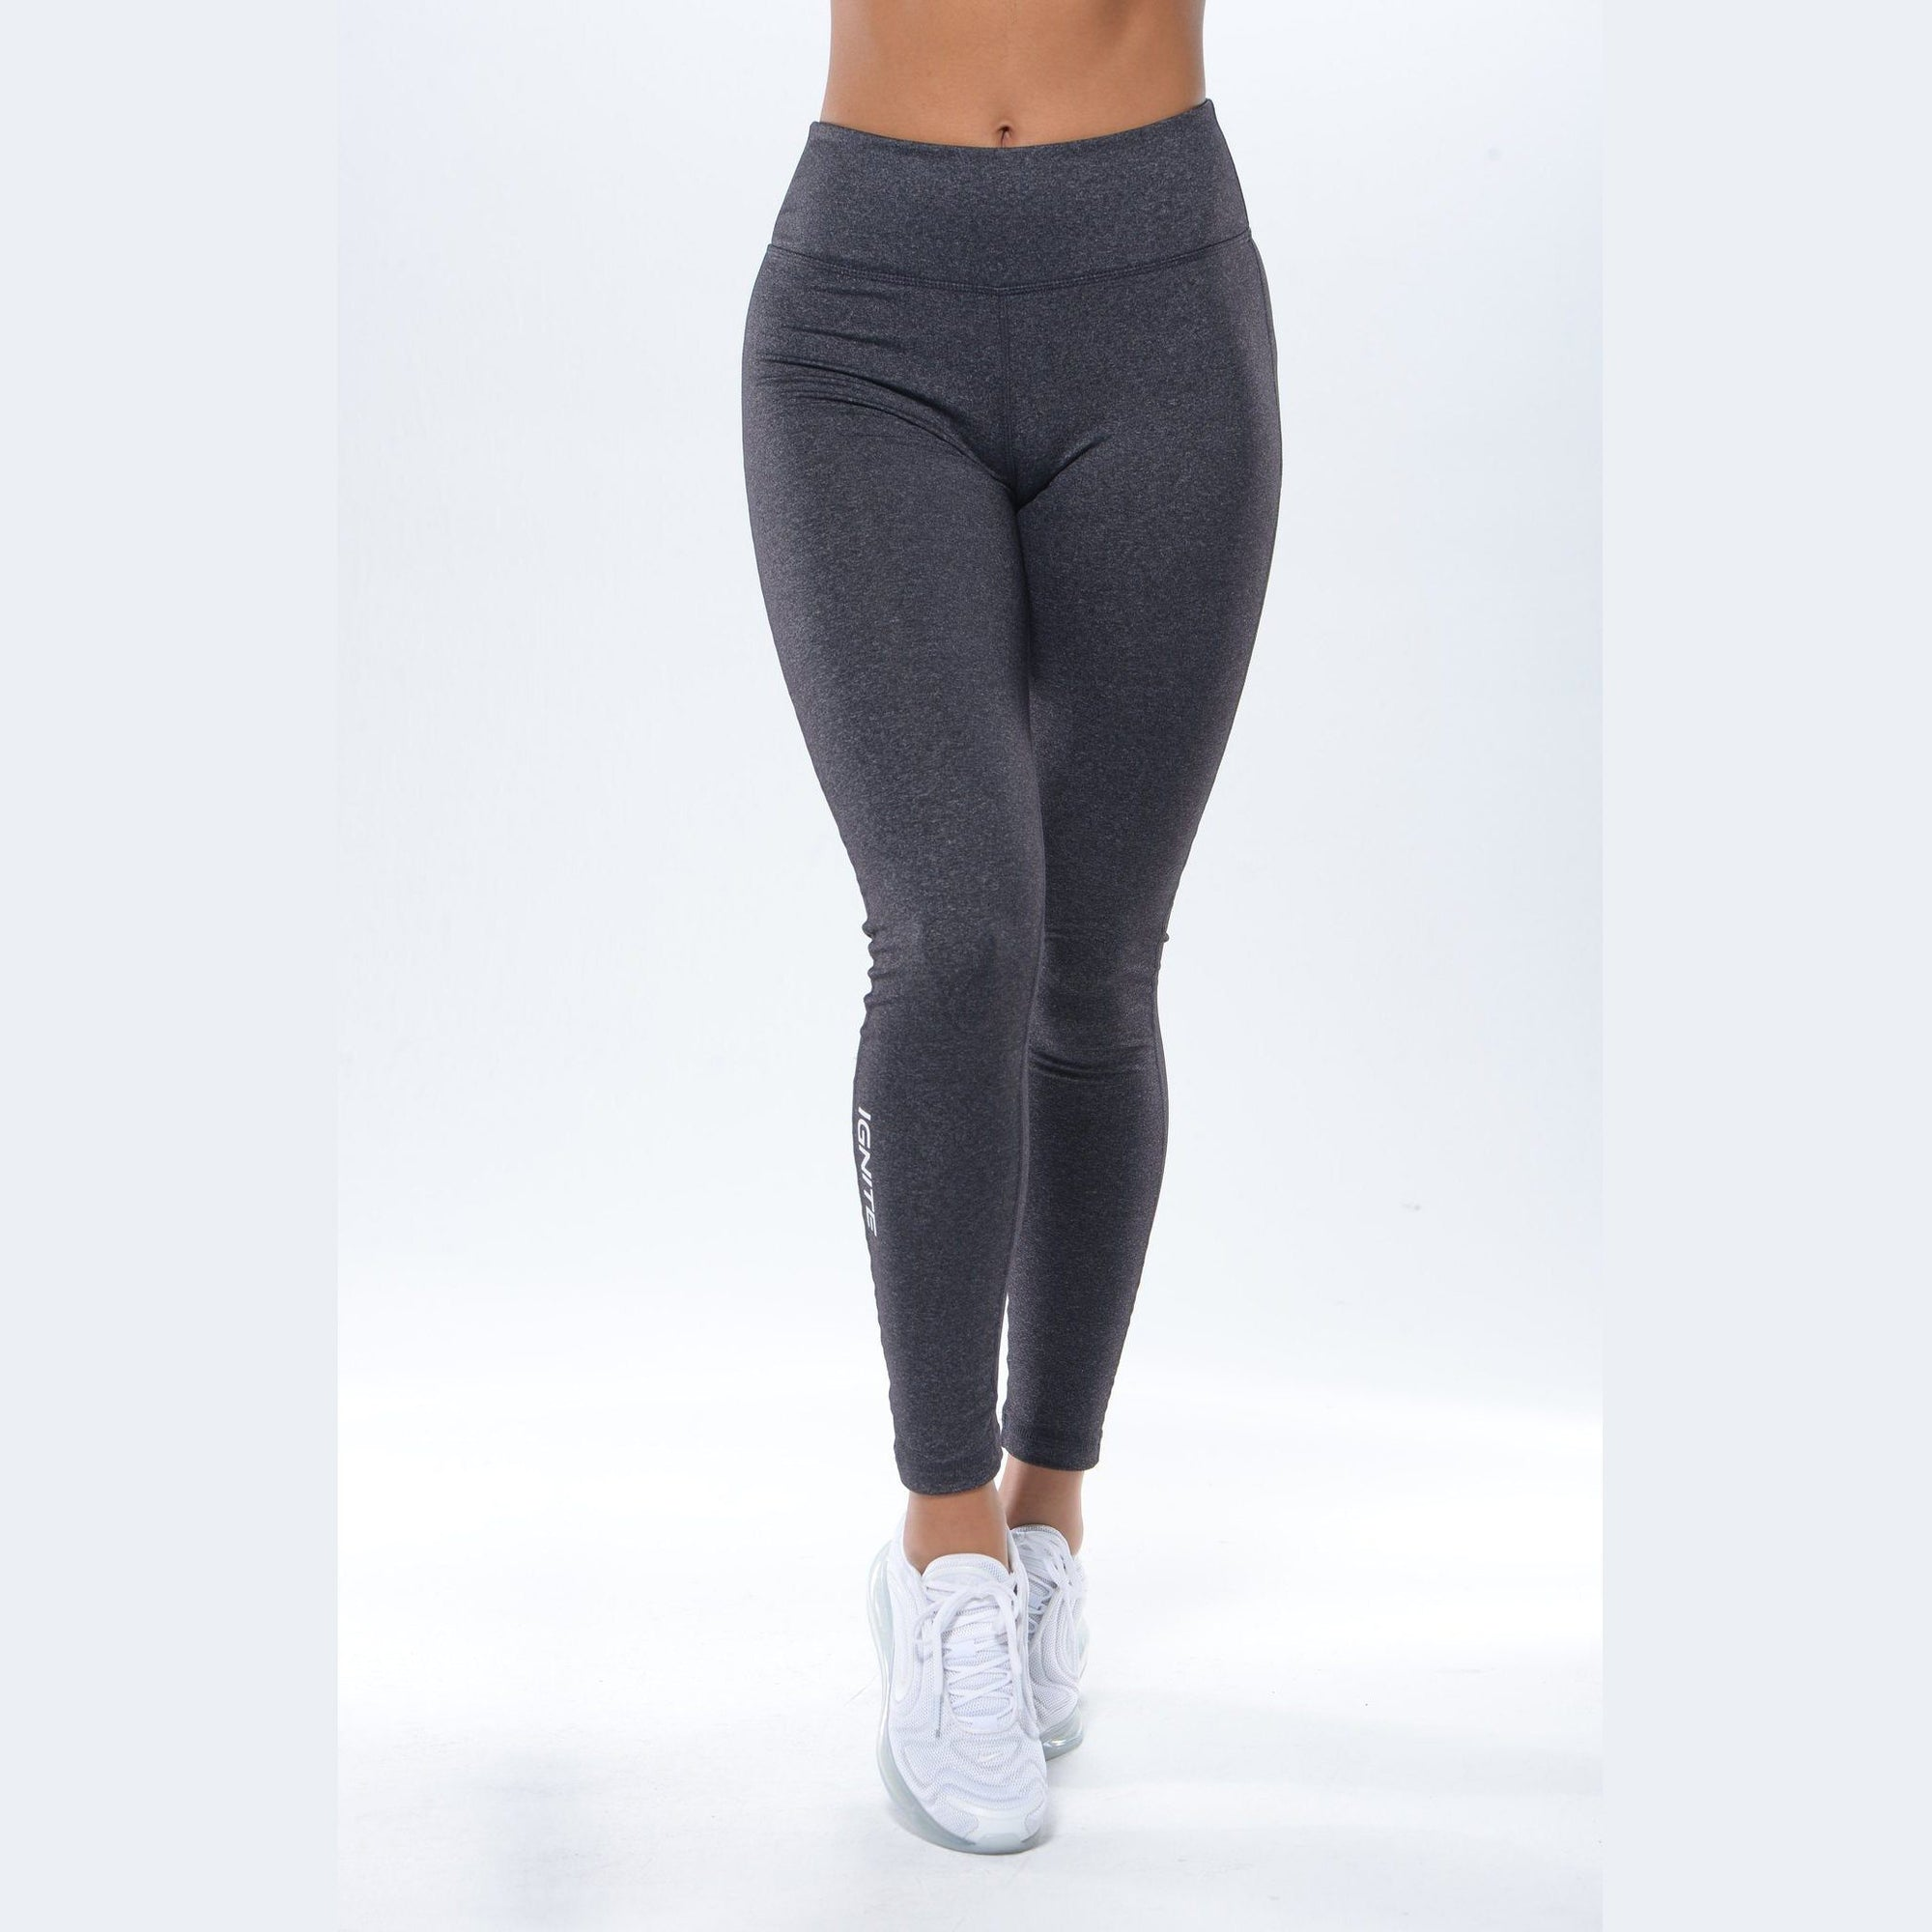 Mid-Rise Seamless Leggings - Charcoal